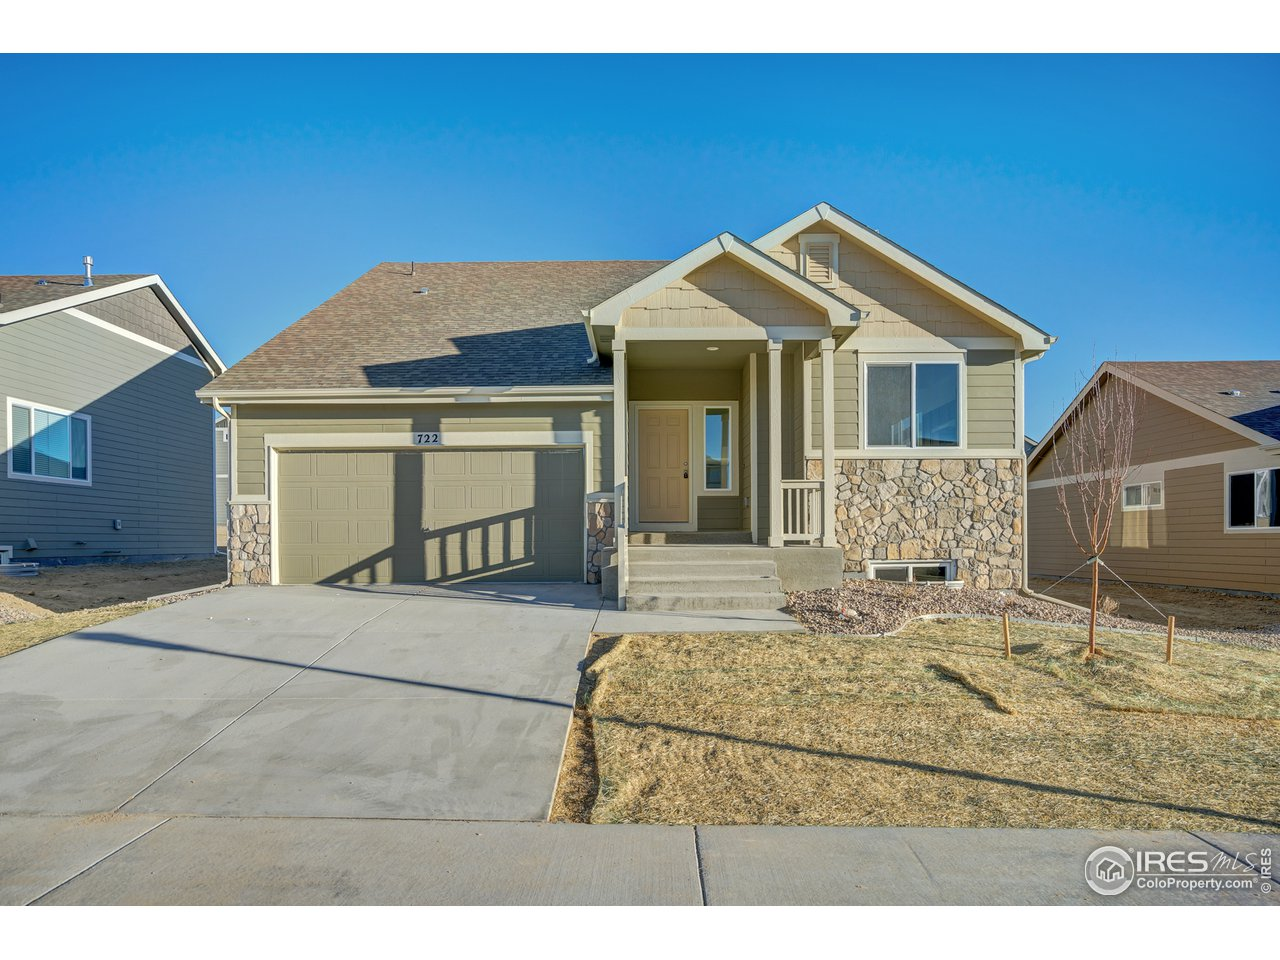 1408 88th Ave Ct, Greeley CO 80634